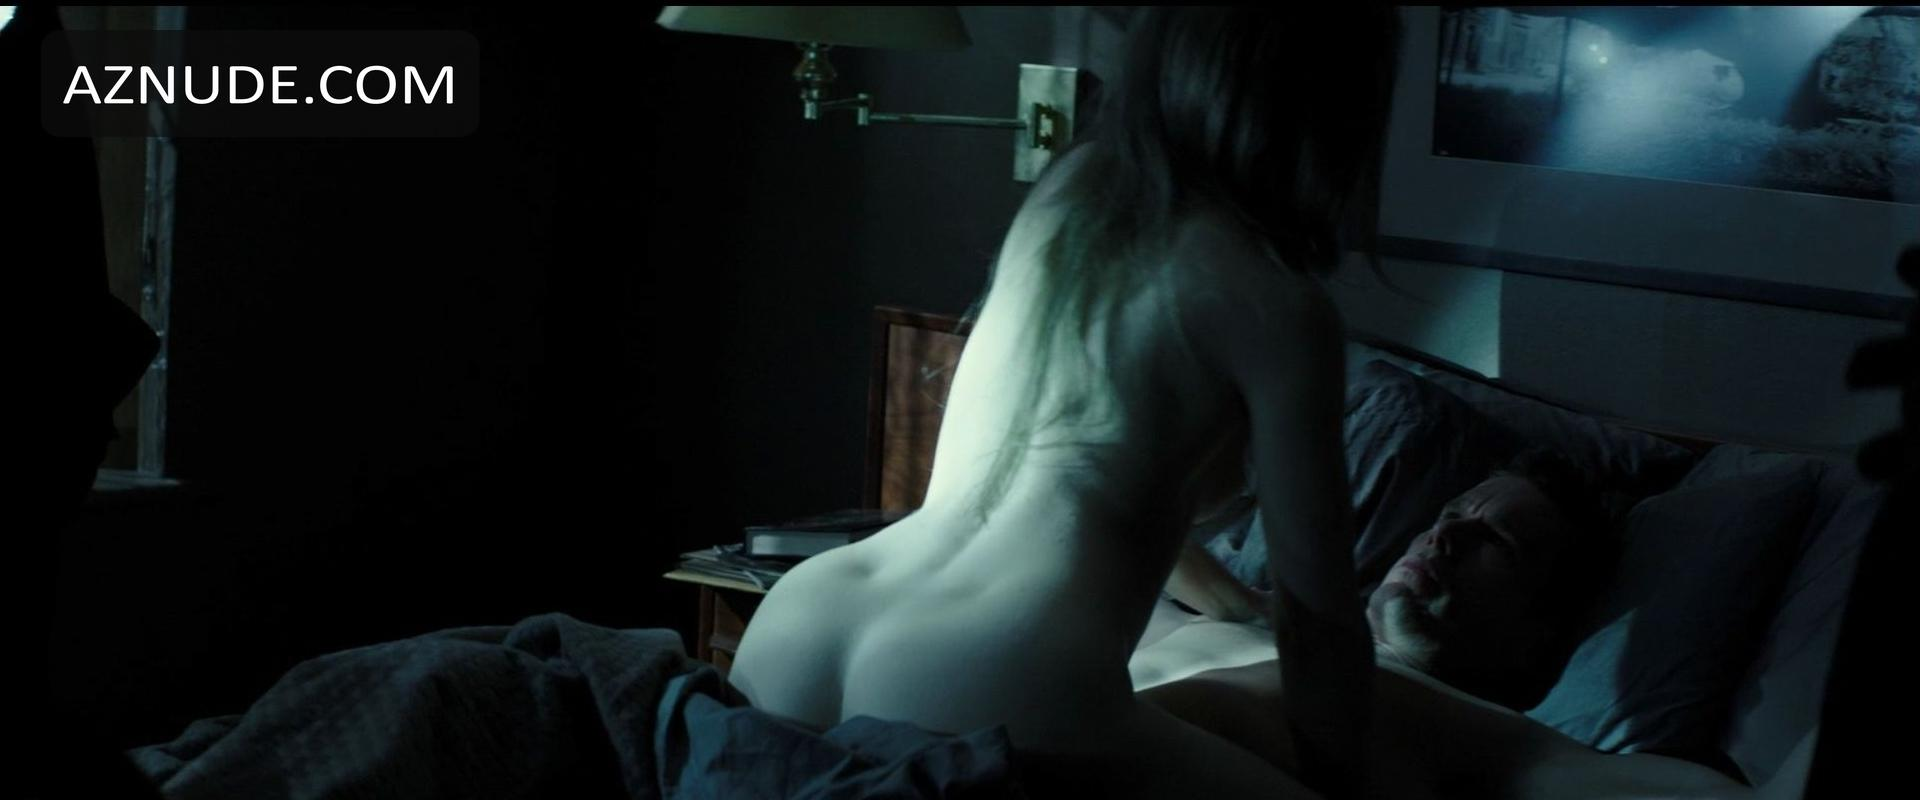 Regression emma watson nude sex scene